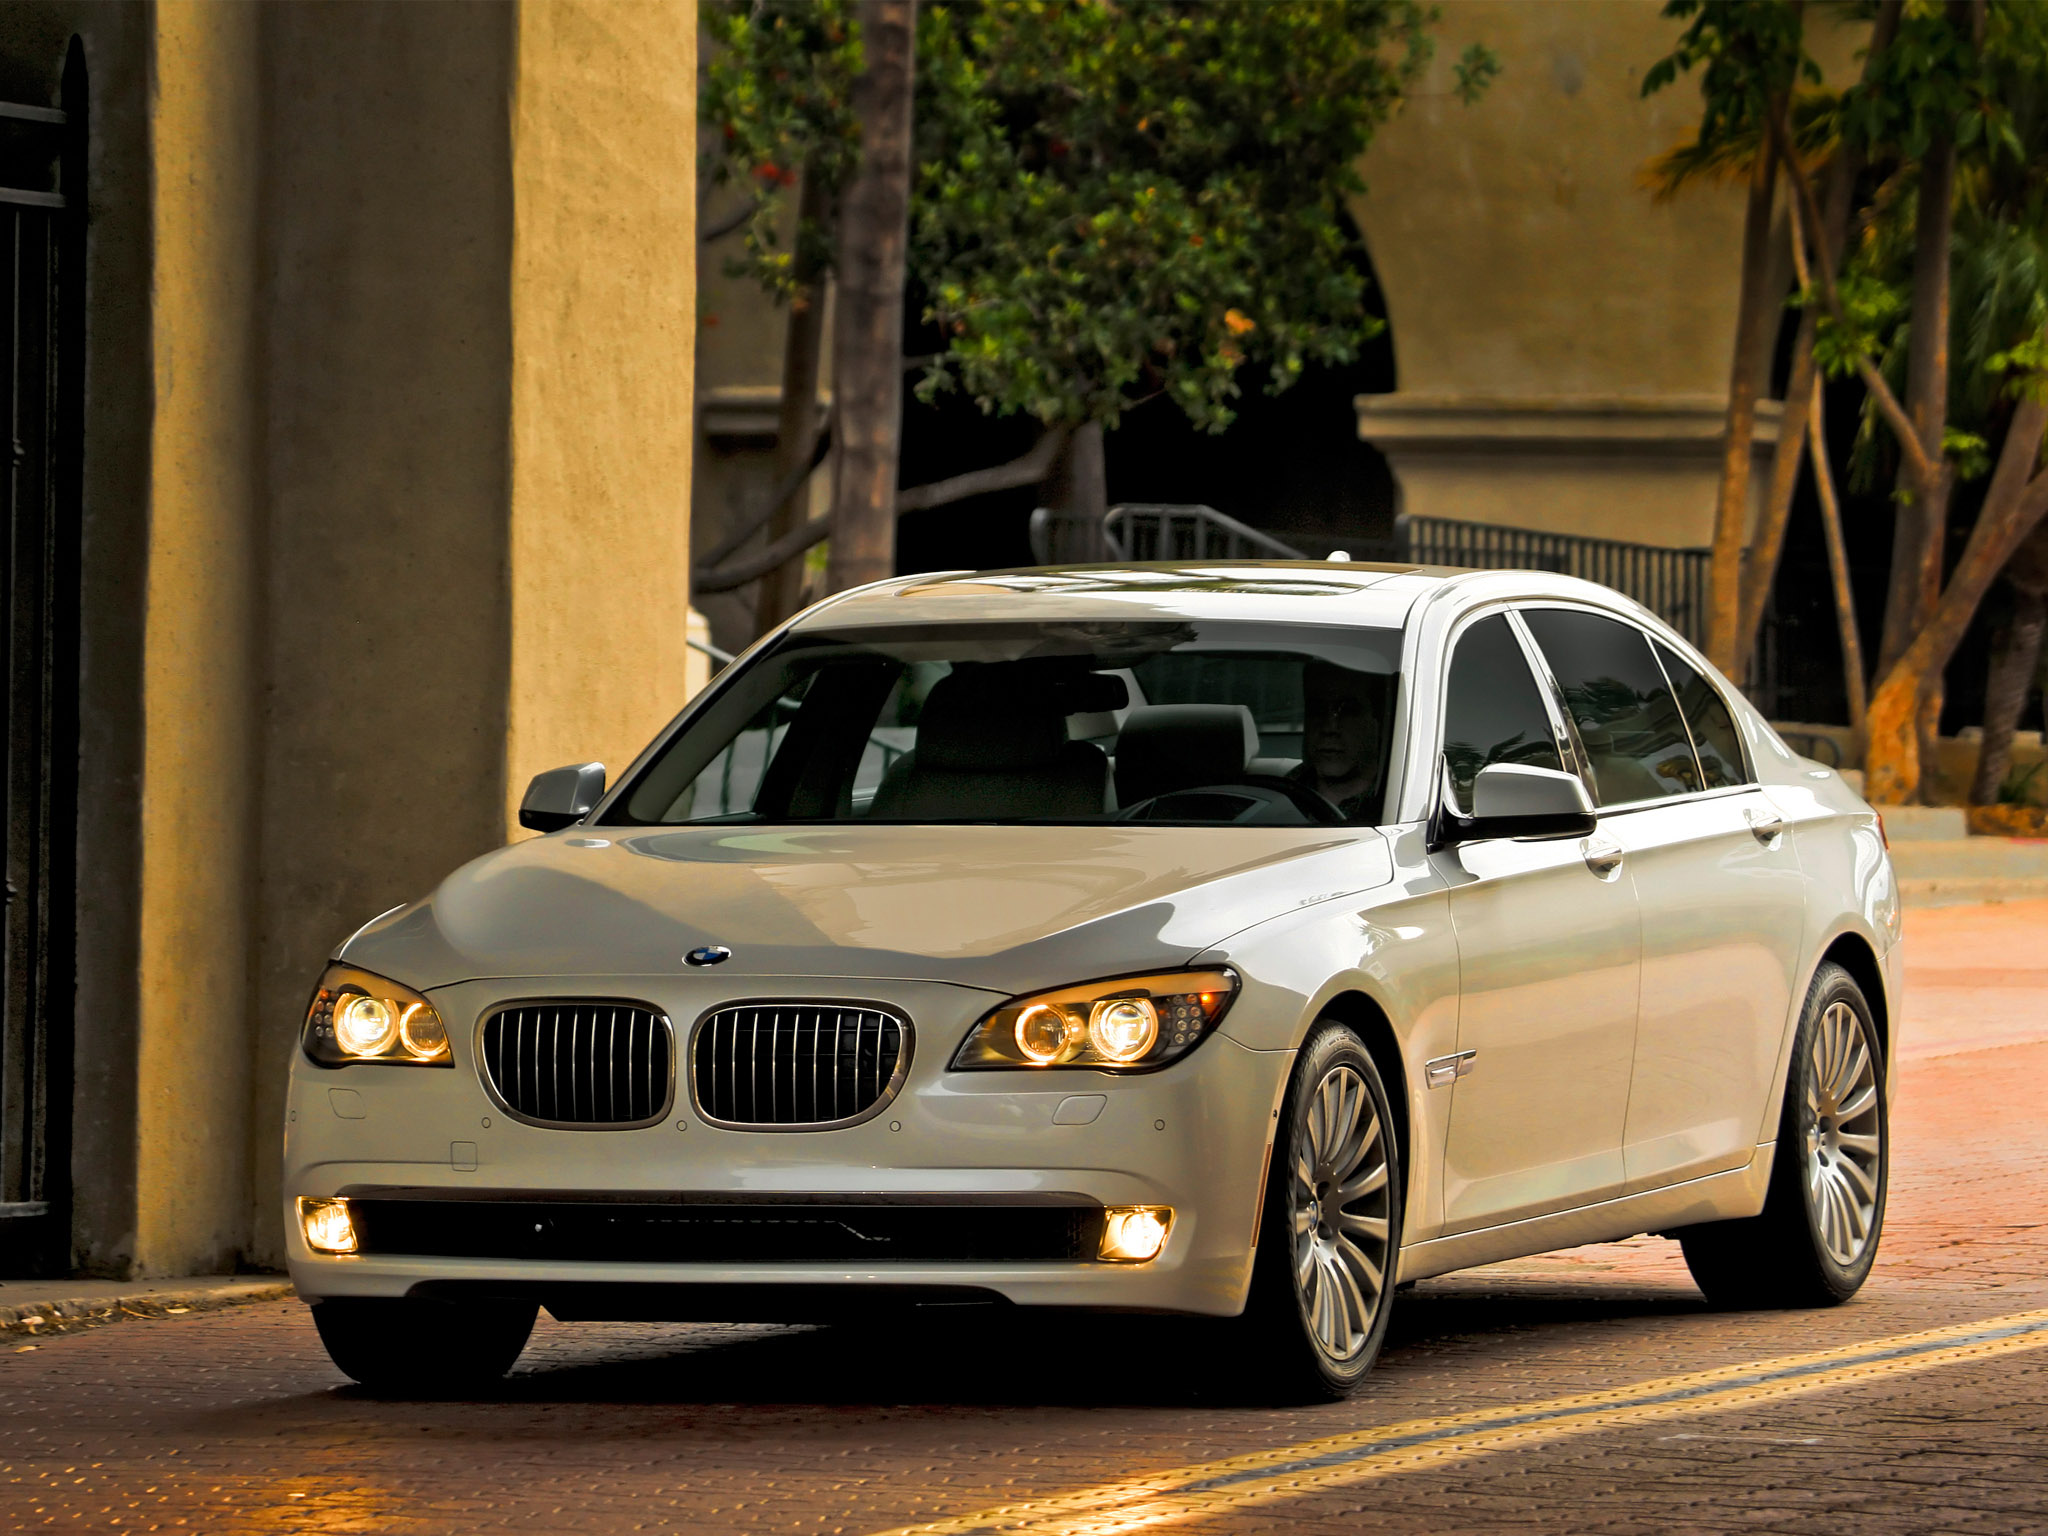 Pictures of bmw 7er (f01/f02) 2008